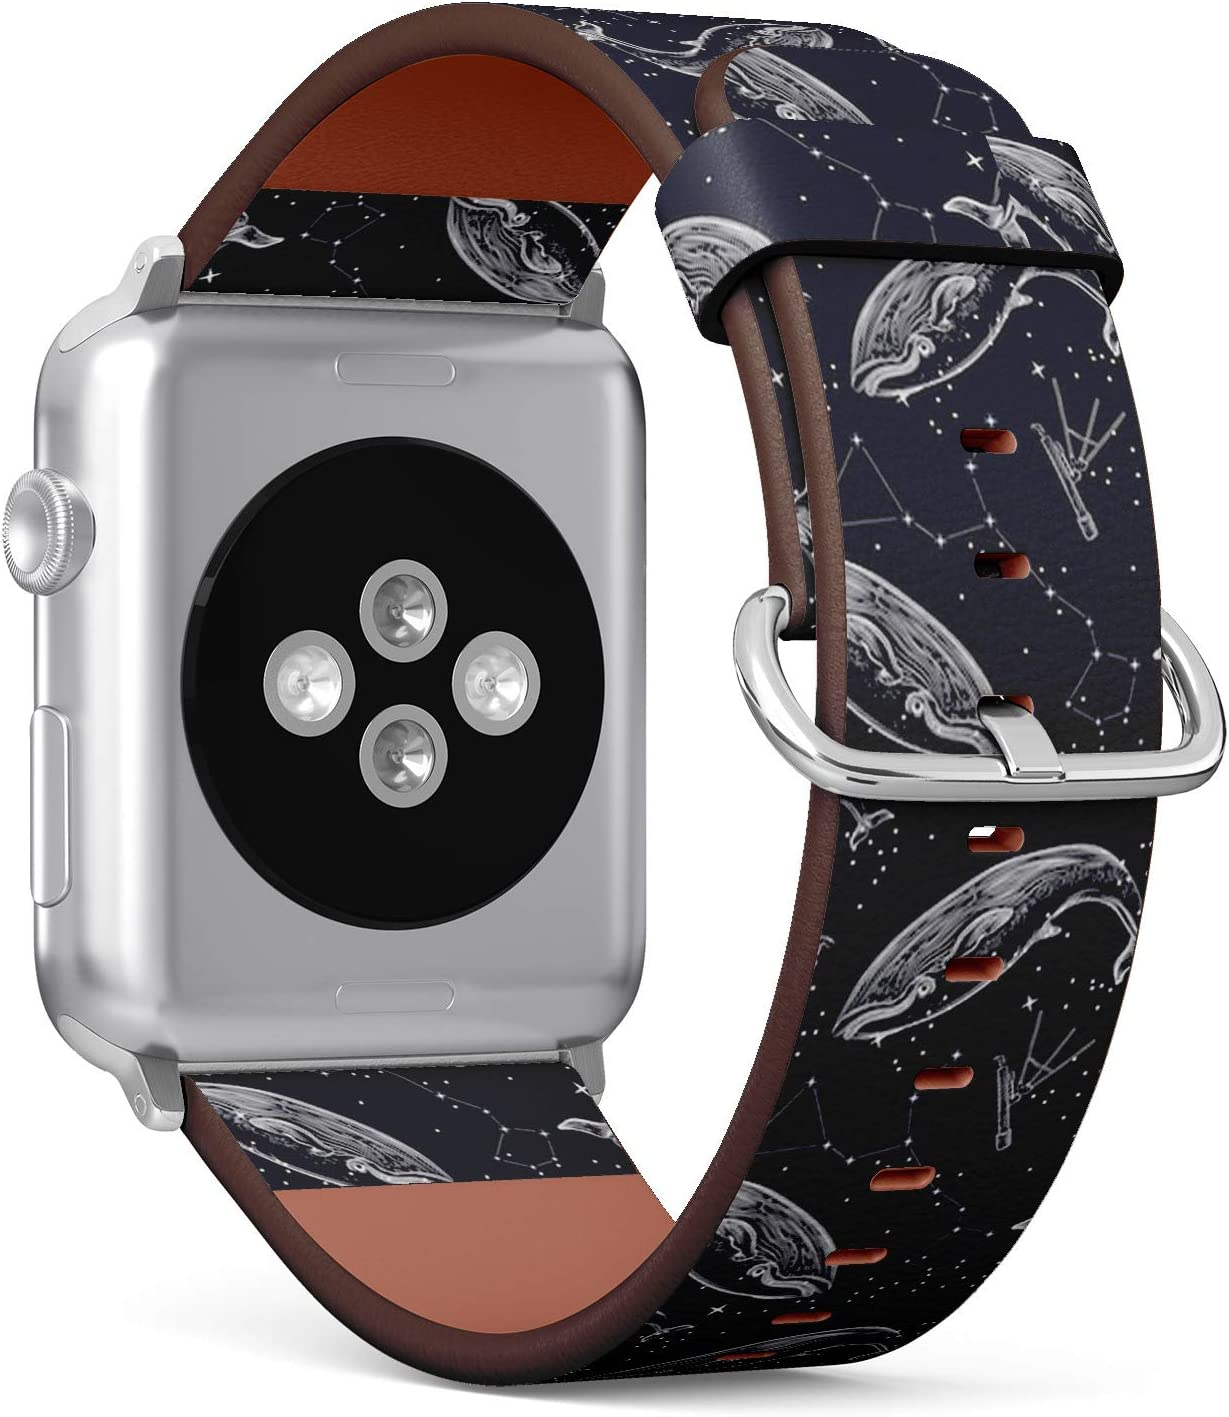 Compatible with Apple Watch 42/44mm (Big) - Replacement Accessory Leather Band Strap Bracelet Wristbands with Adapters (Whale Constellation)